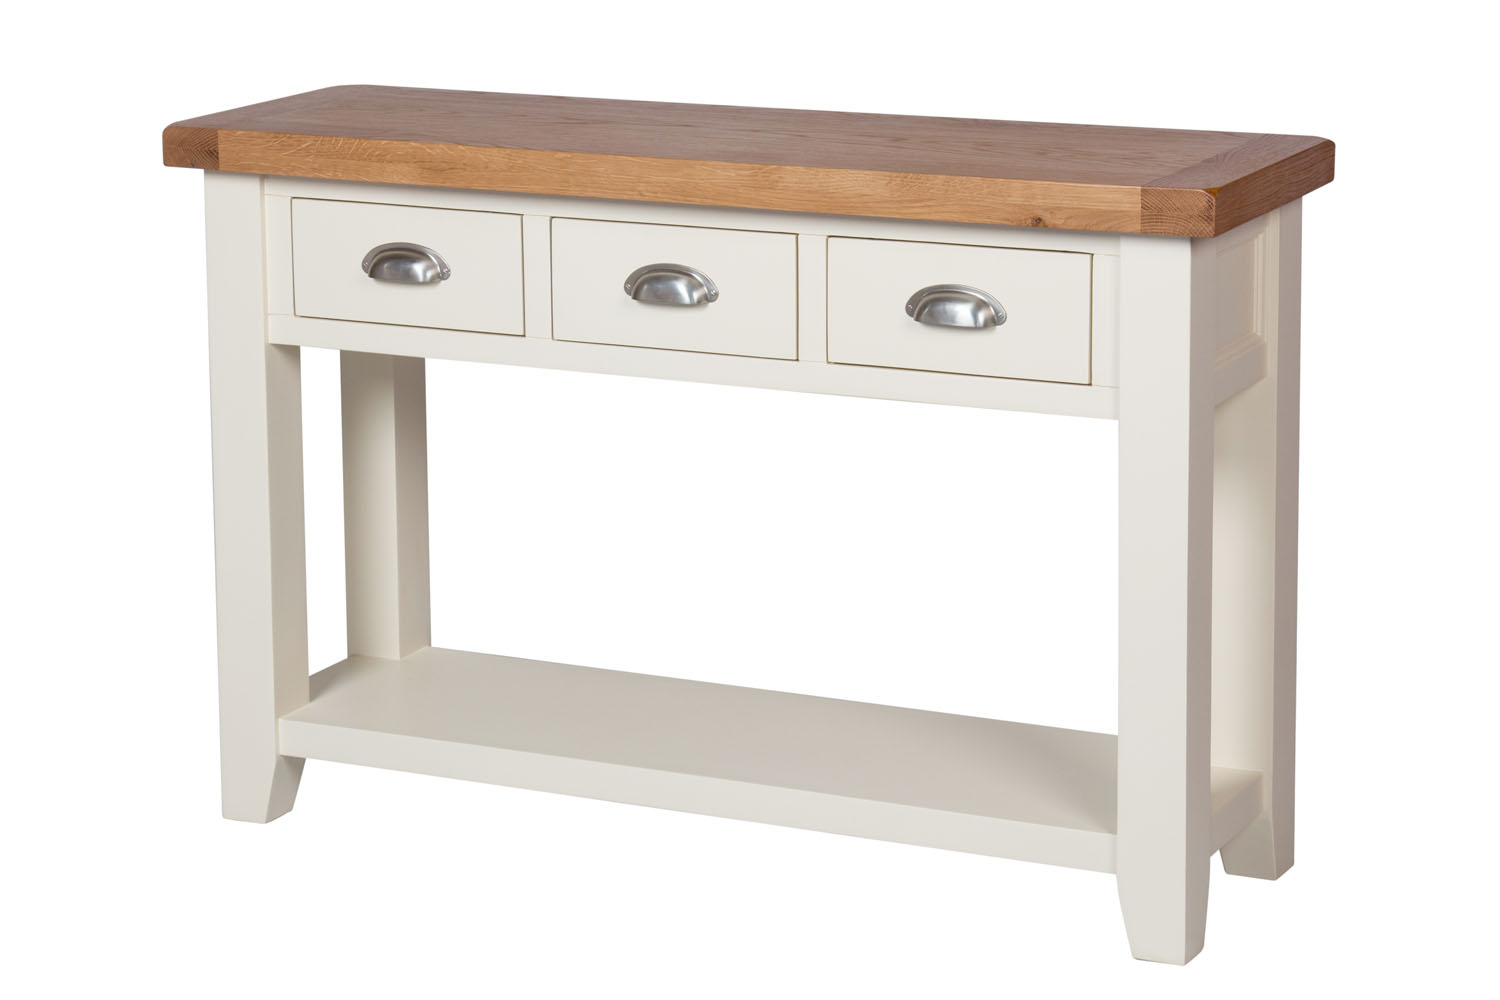 Country Cottage Cream Painted Drawer Console Table - Country cottage console table